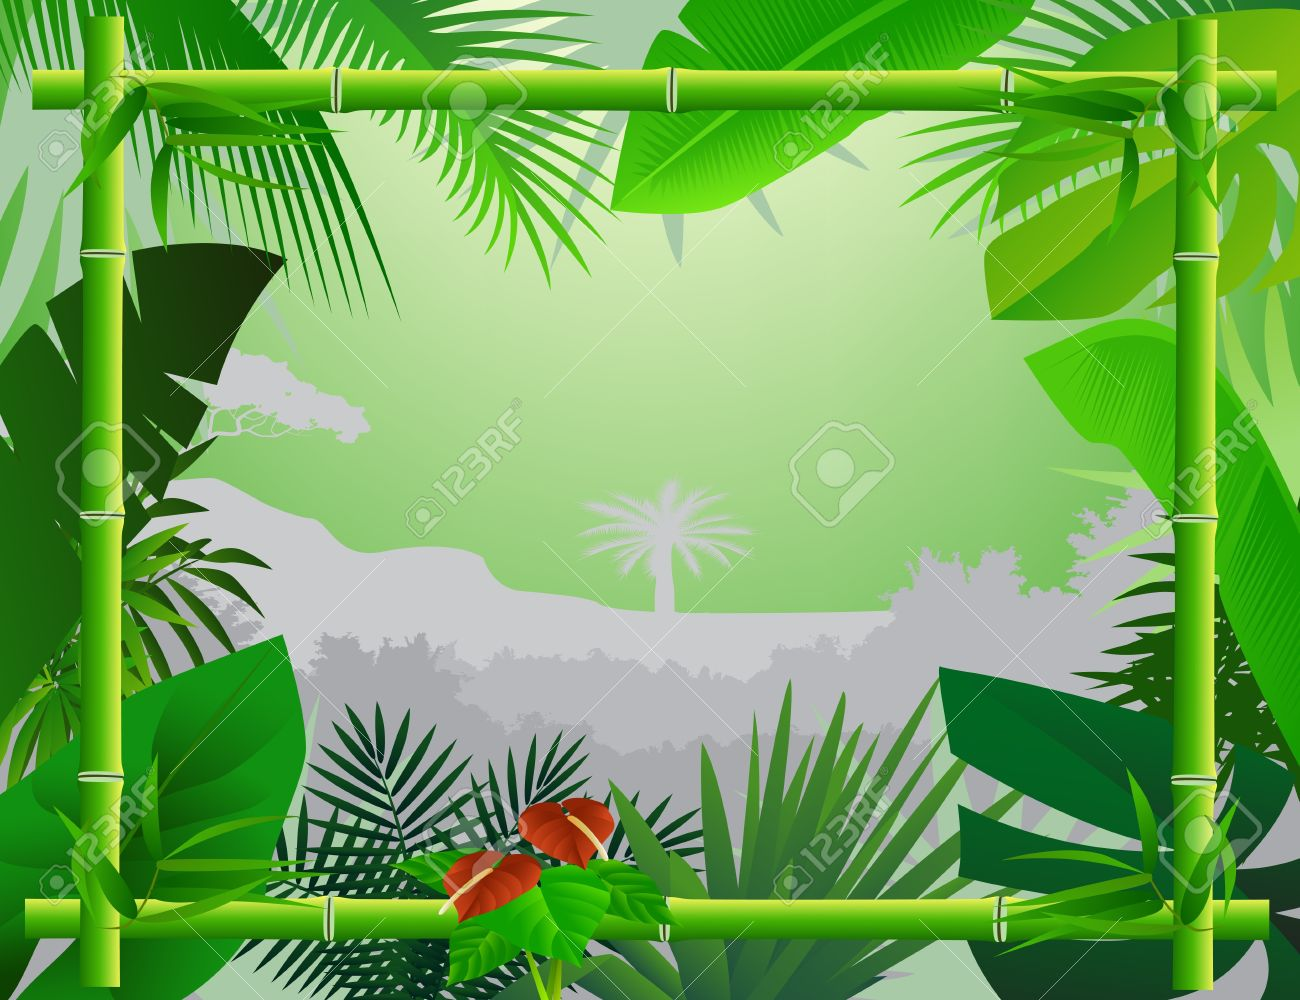 Tropical Background with Bamboo Frame Stock Vector - 12832962